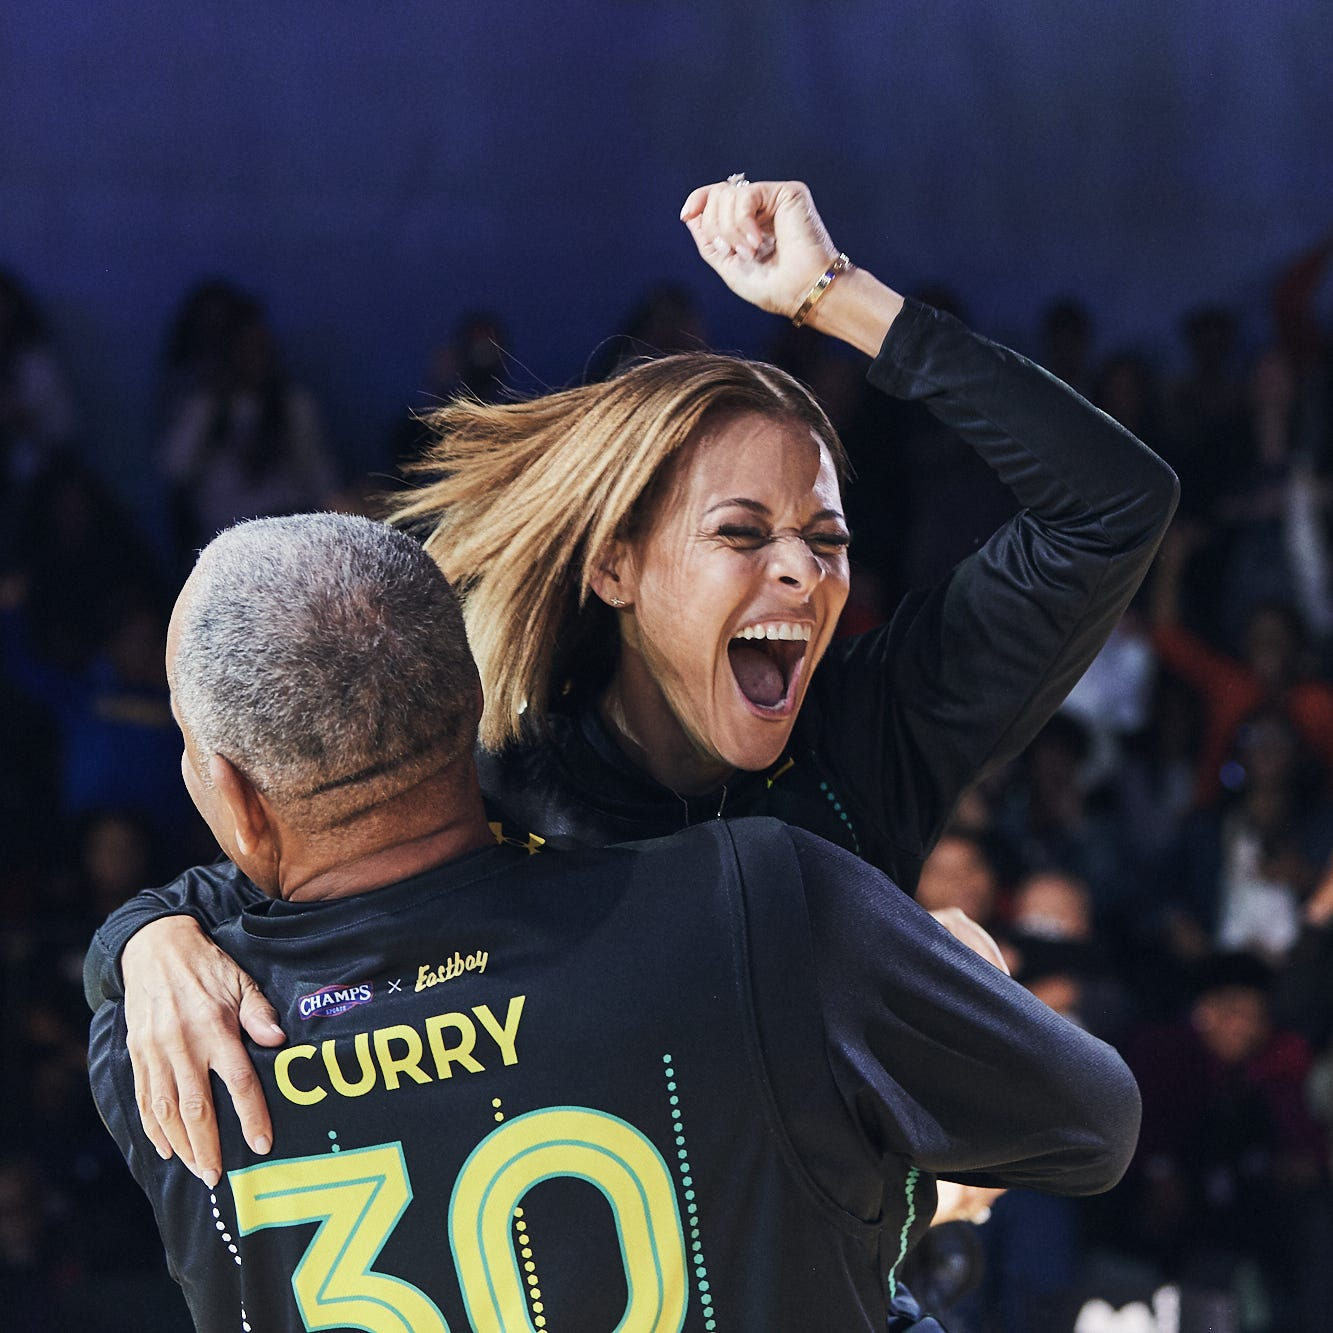 Steph Curry and family put on show, highlighted by mom's halfcourt shot, while giving back